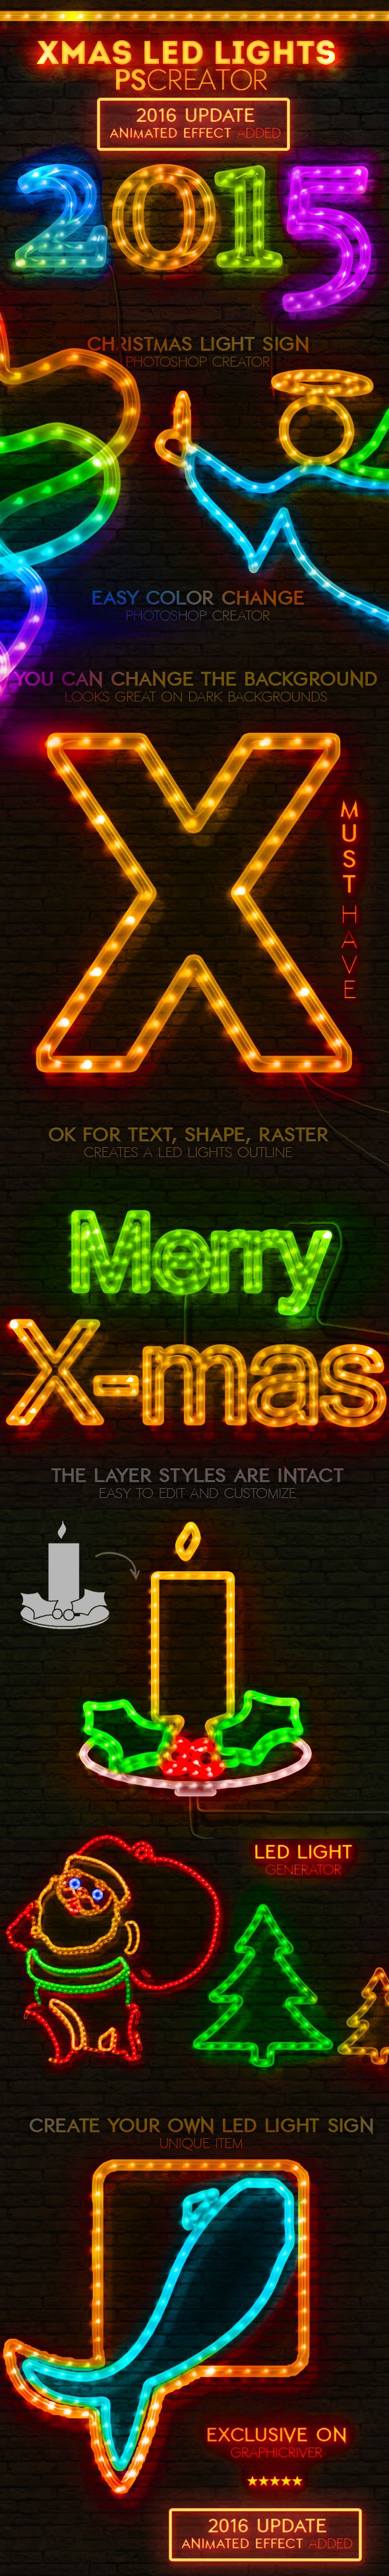 Christmas LED Light Rope Photoshop Action — Photoshop ABR #LED action #led light • Download ➝ https://graphicriver.net/item/christmas-led-light-rope-photoshop-action/9475071?ref=pxcr